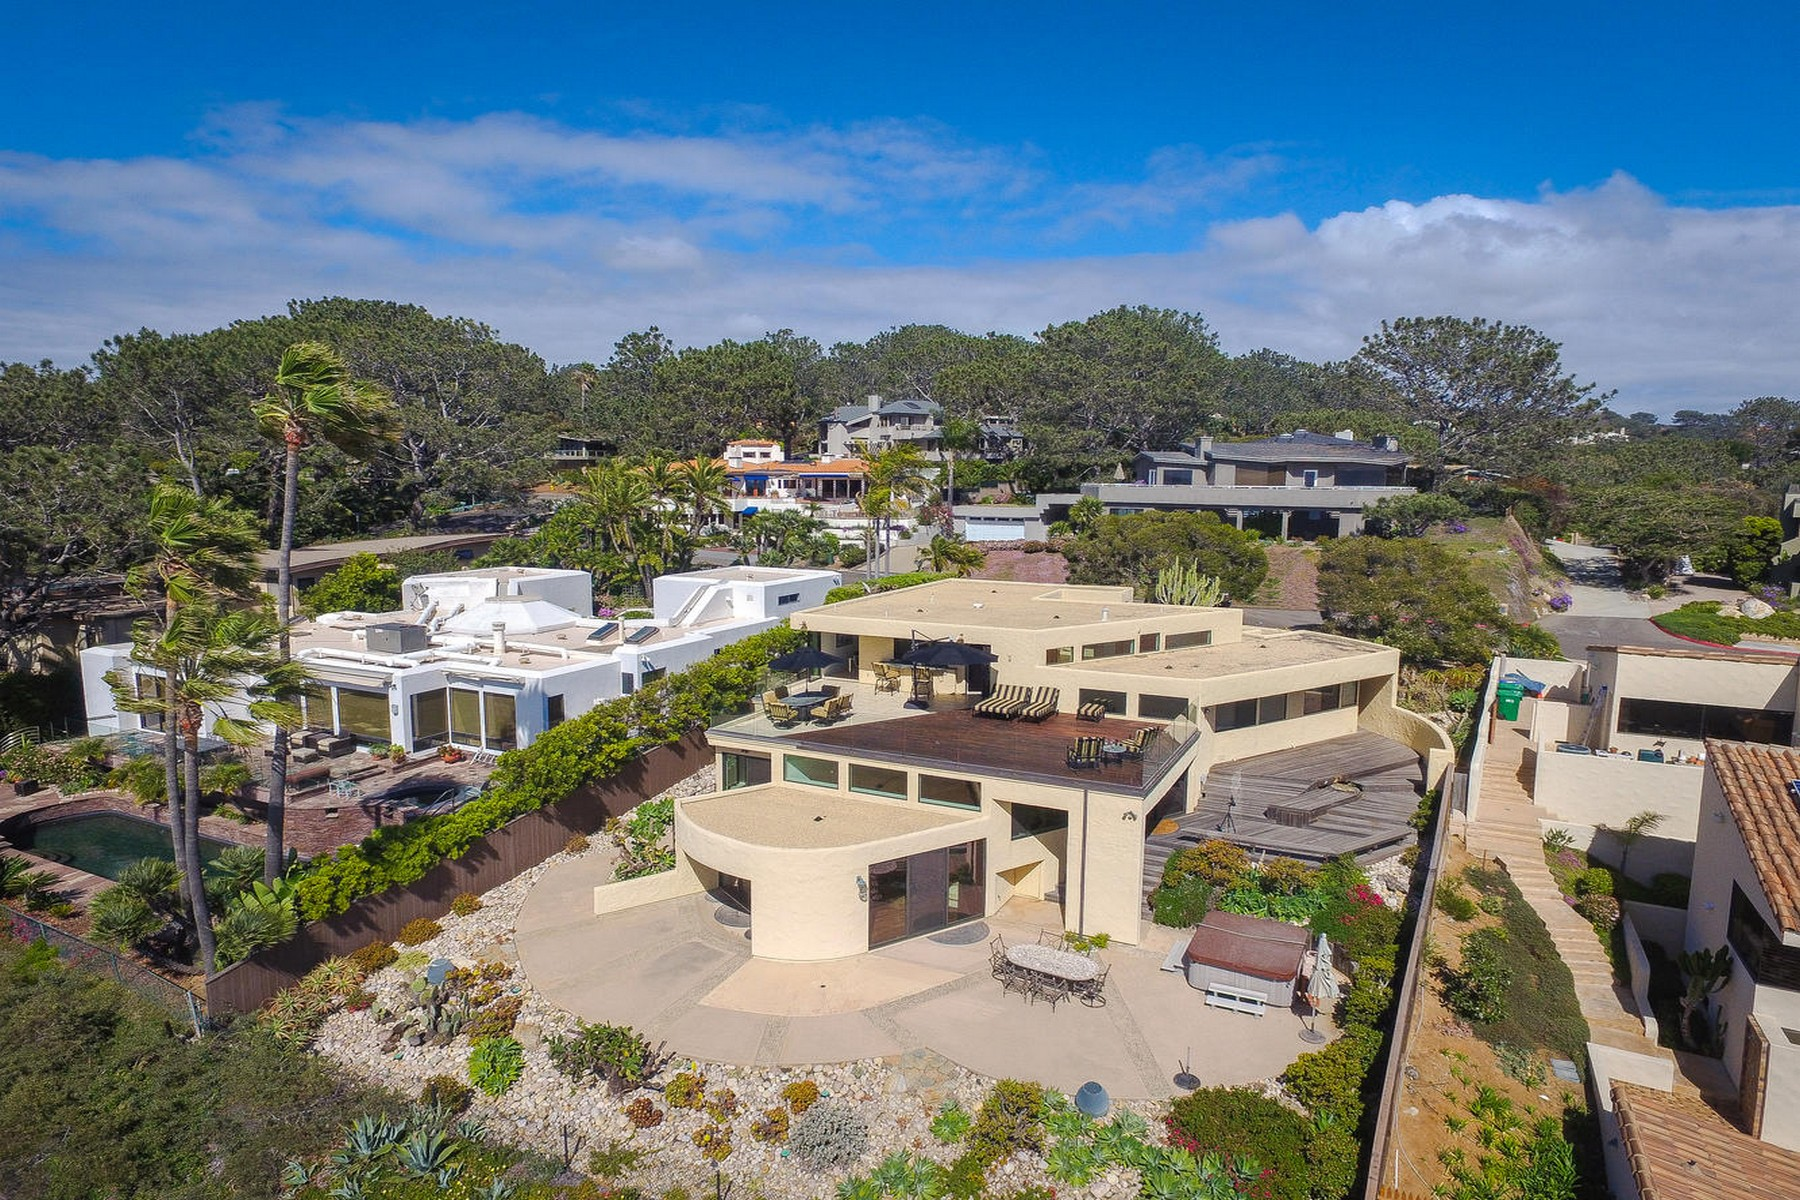 Single Family Home for Active at 454 W. Ocean View Del Mar, California 92014 United States